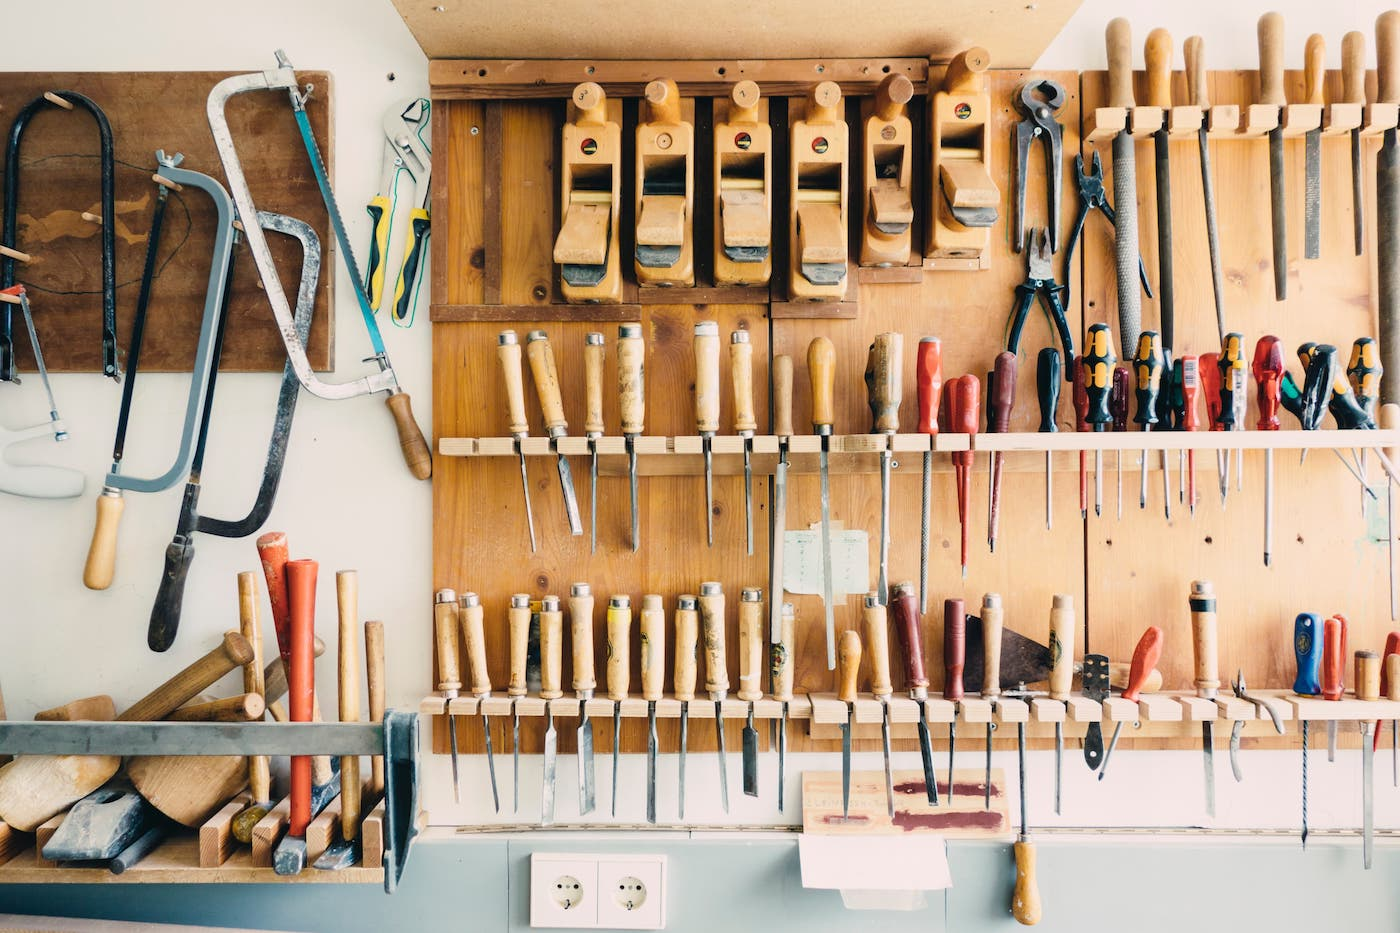 Competency with your organisational tools is important for when considering a remote contract hire.